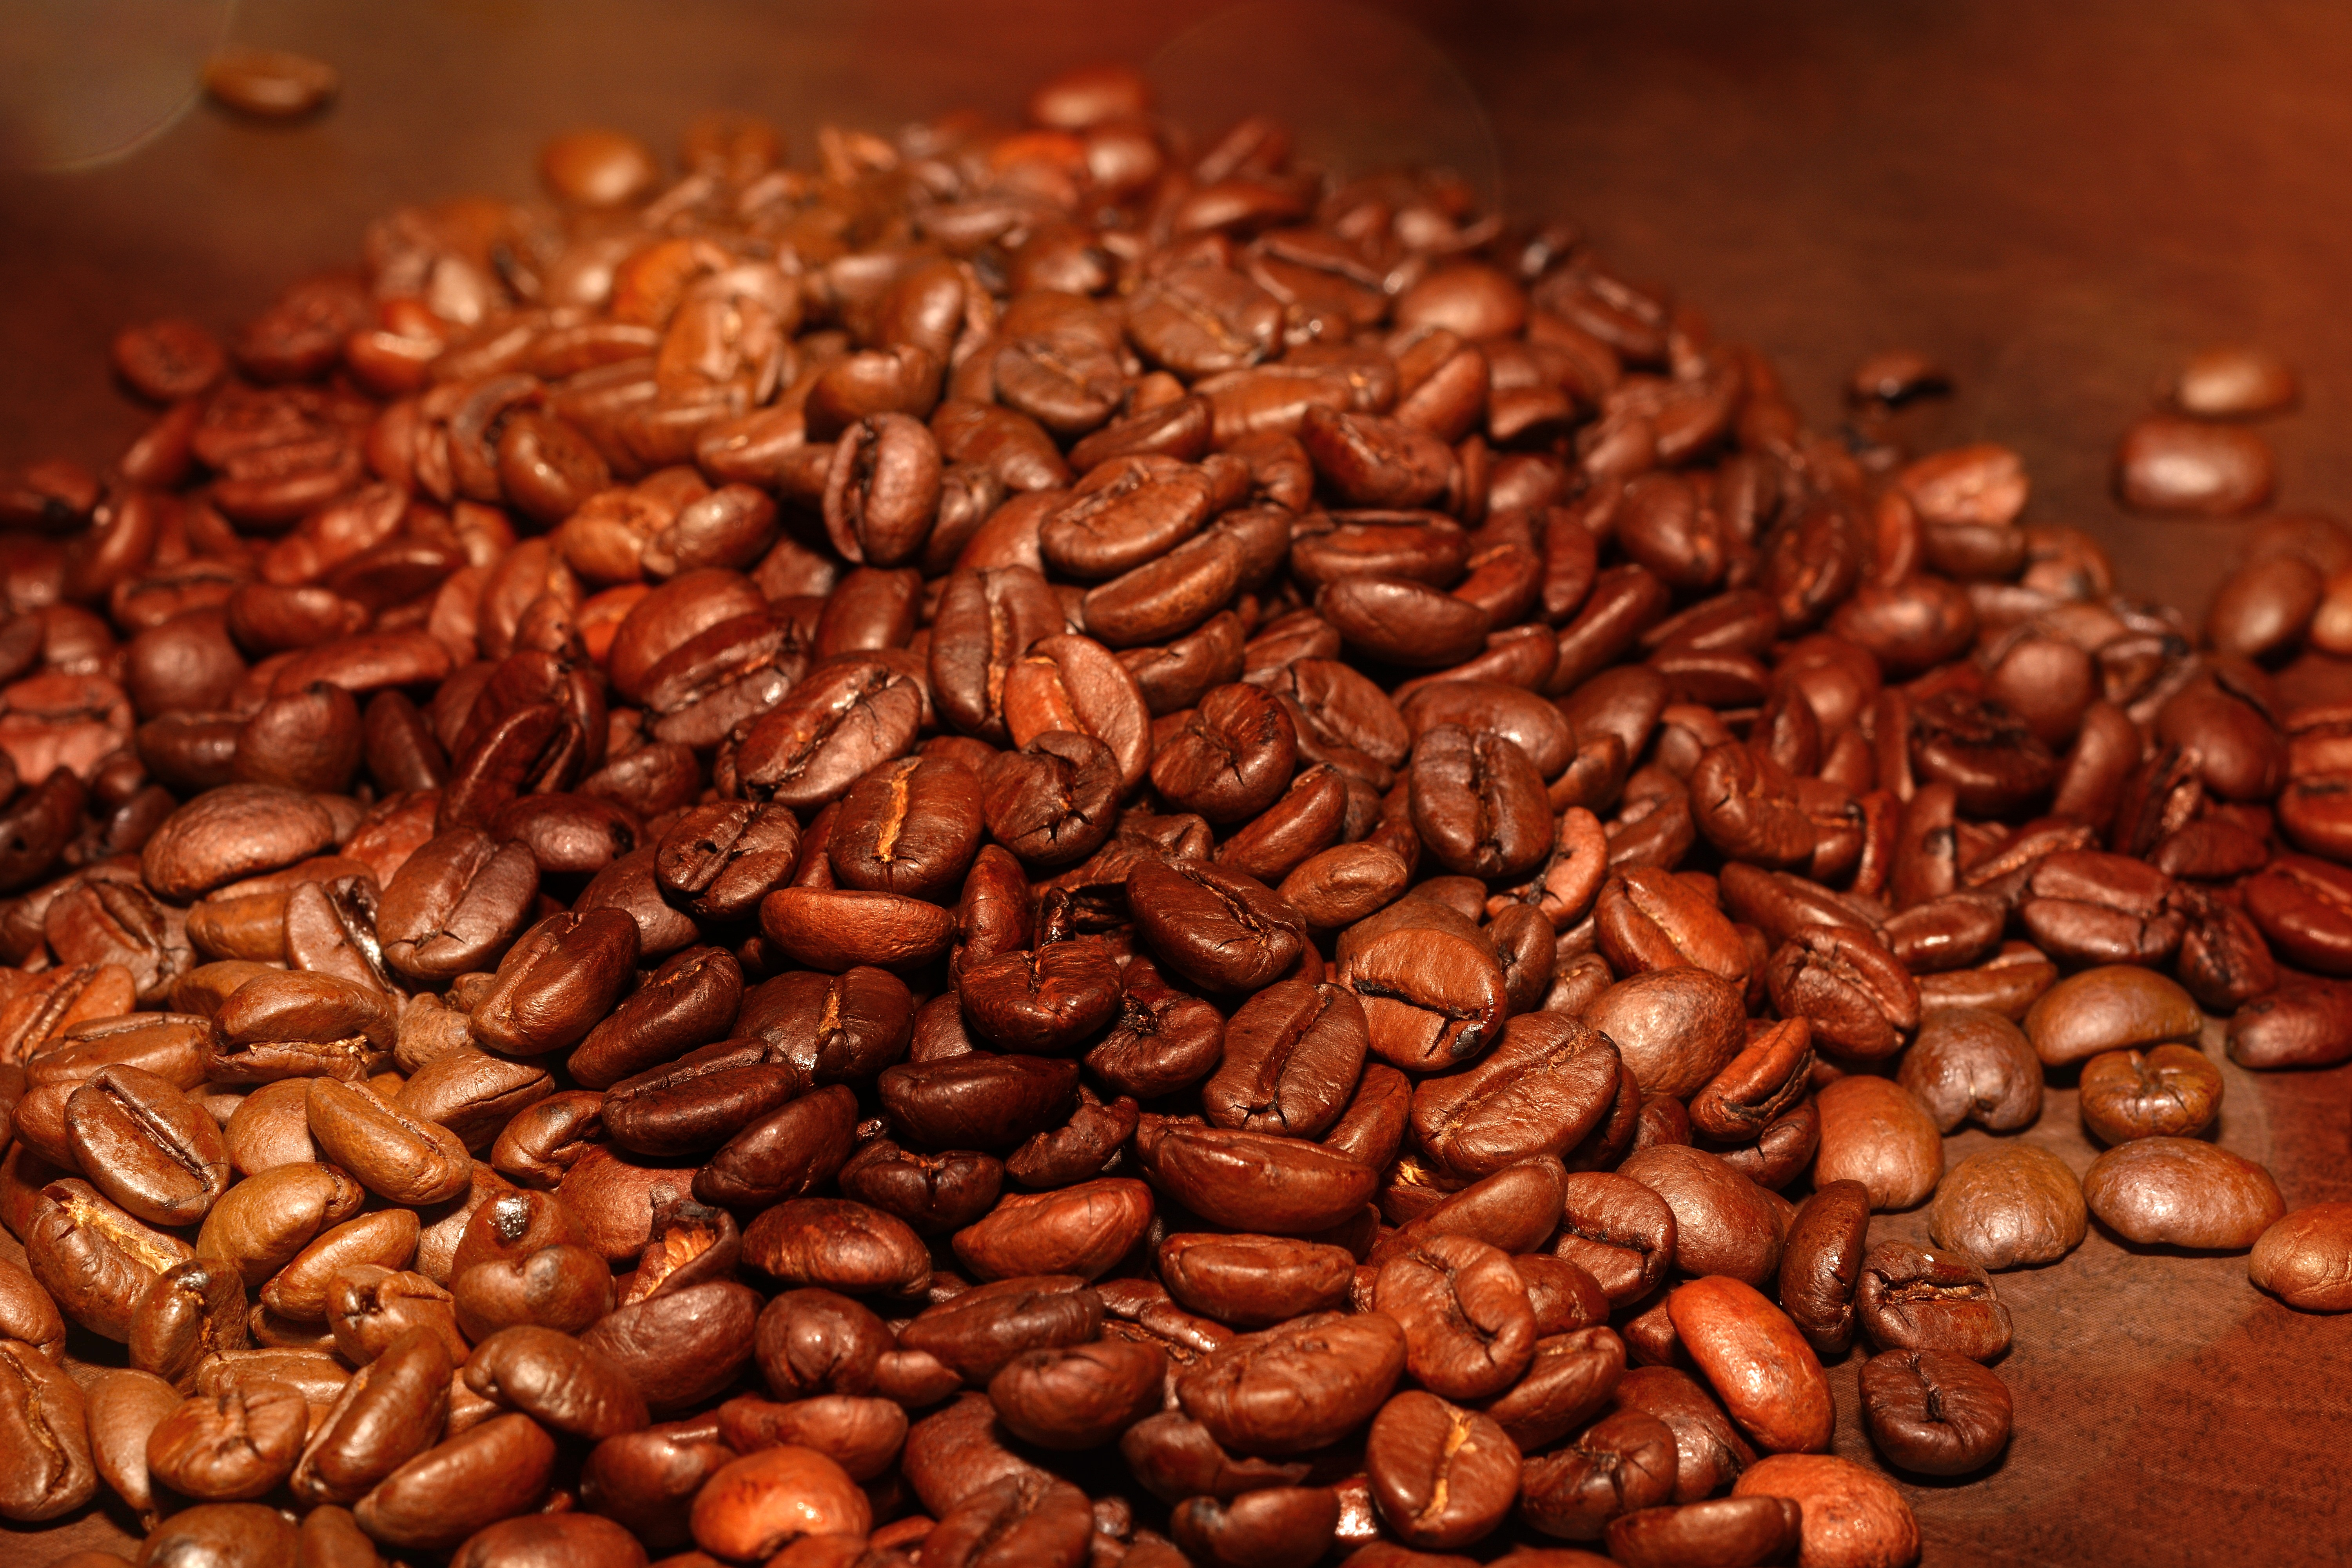 Nature, Seed, Coffee, Brown, Beans, HQ Photo